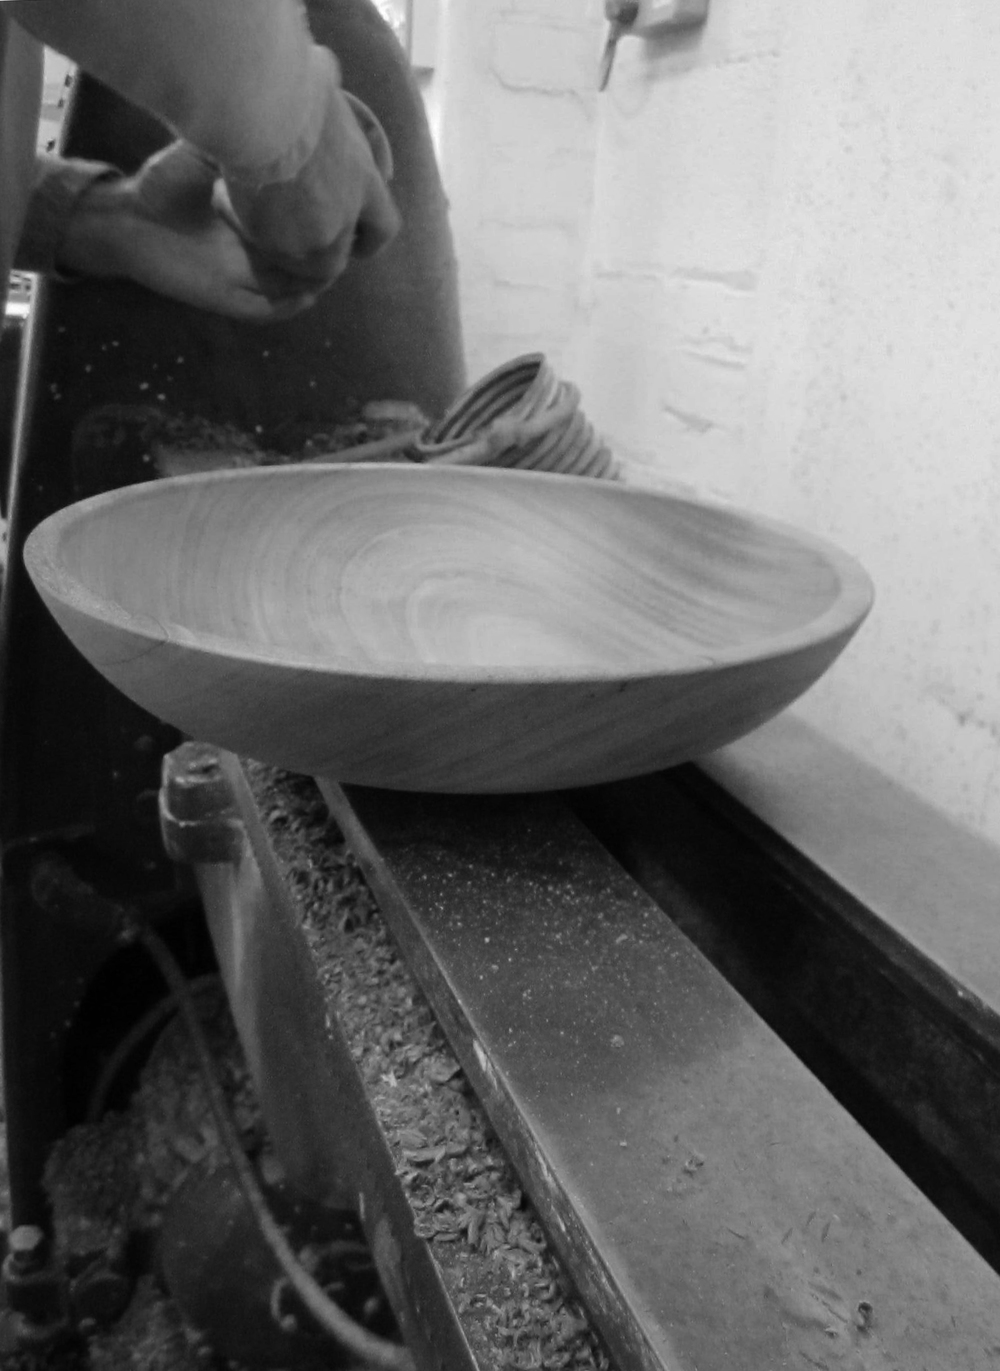 final bowl, just a layer of mineral oil to feed the wood and the process is complete